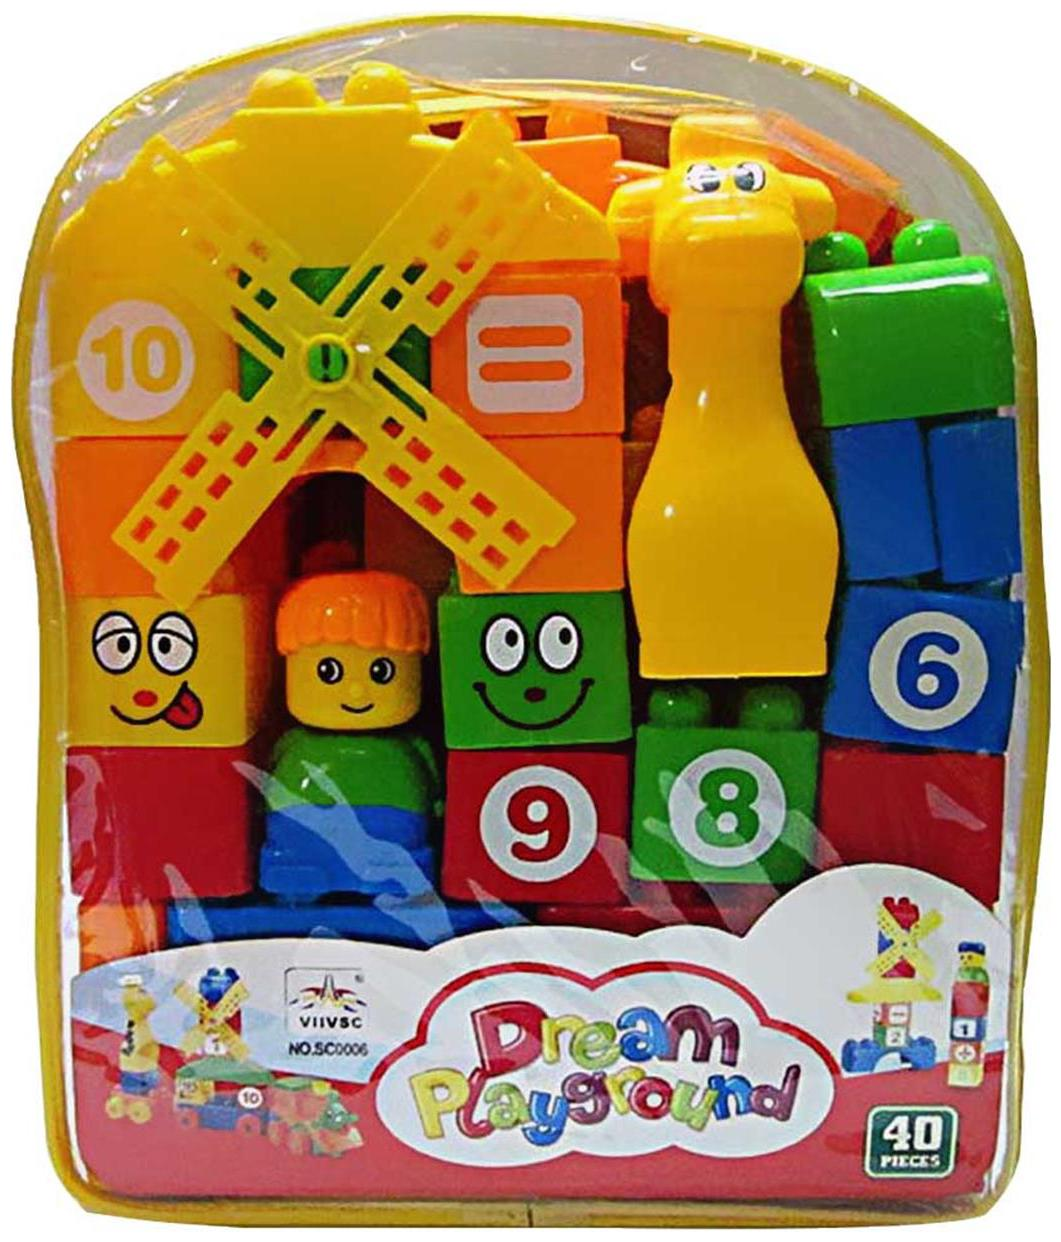 40pcs. Building Blocks for kids by New Pinch